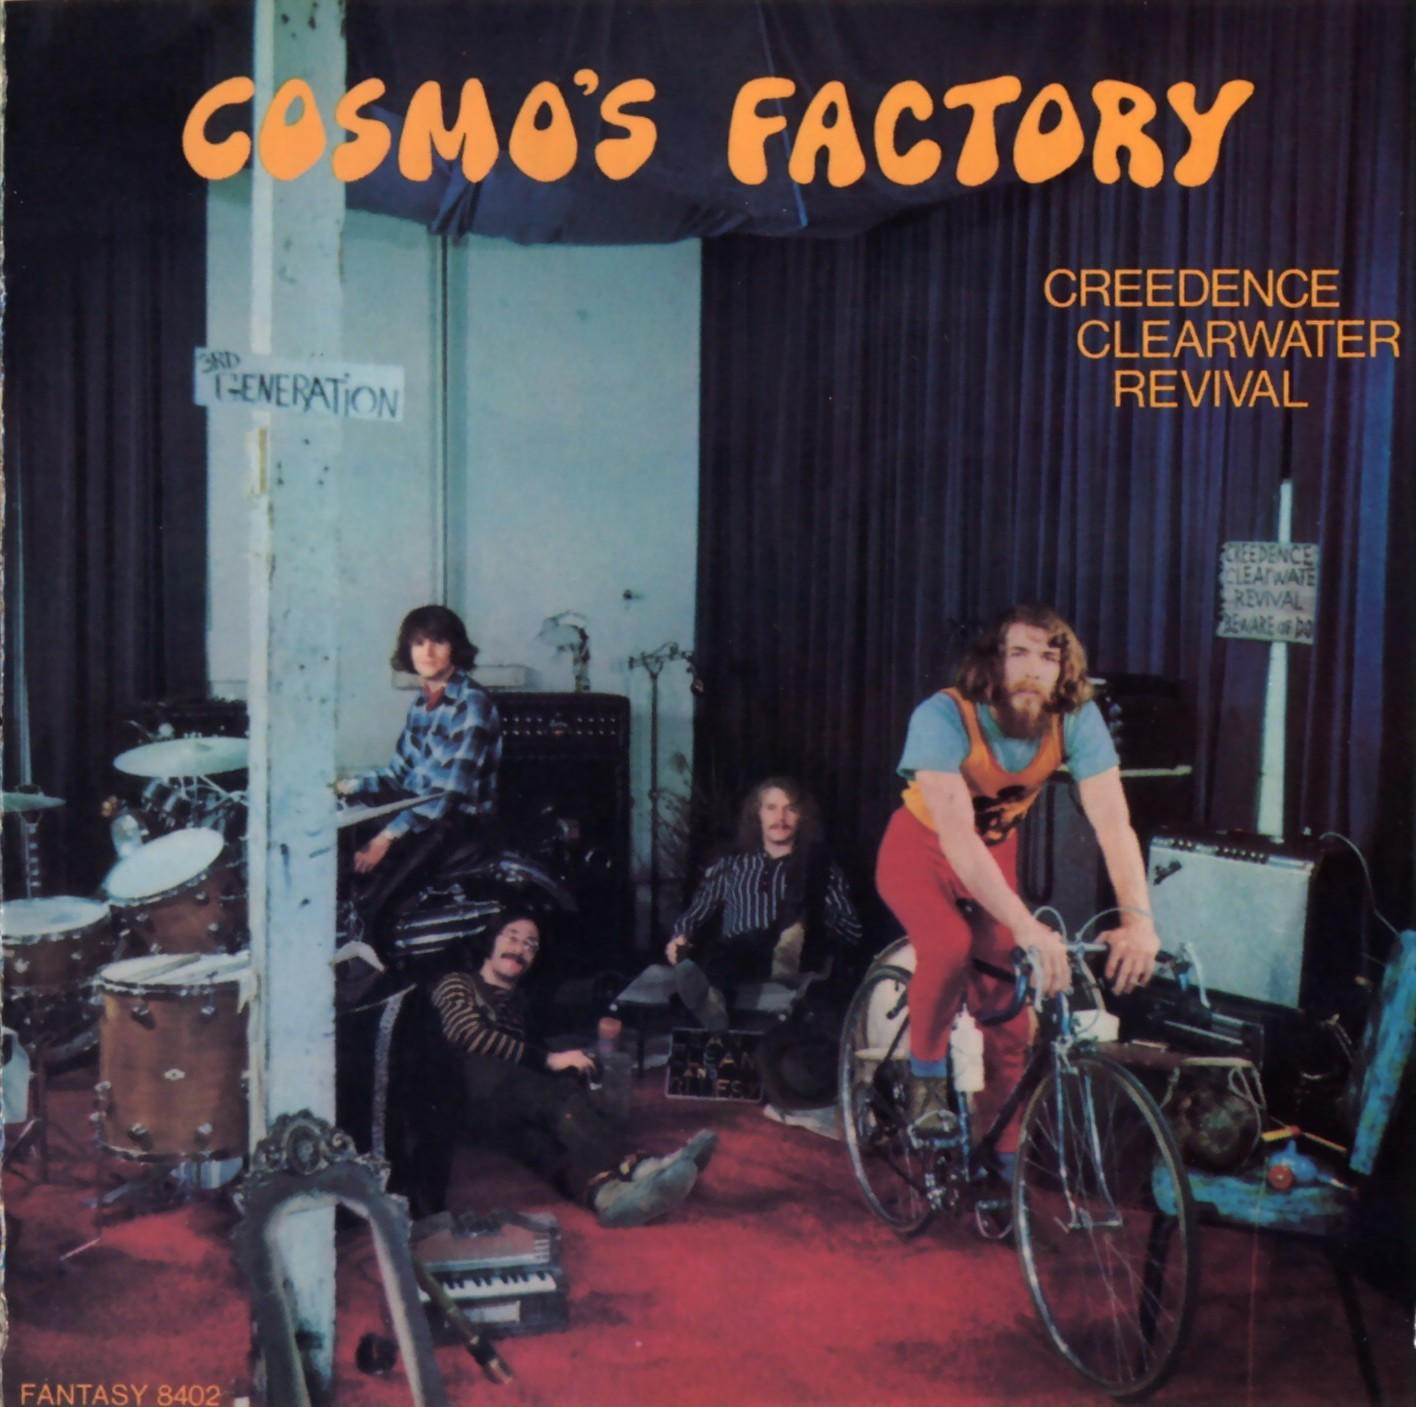 Creedence Clearwater Revival - Bad Moon Rising Over Lodi